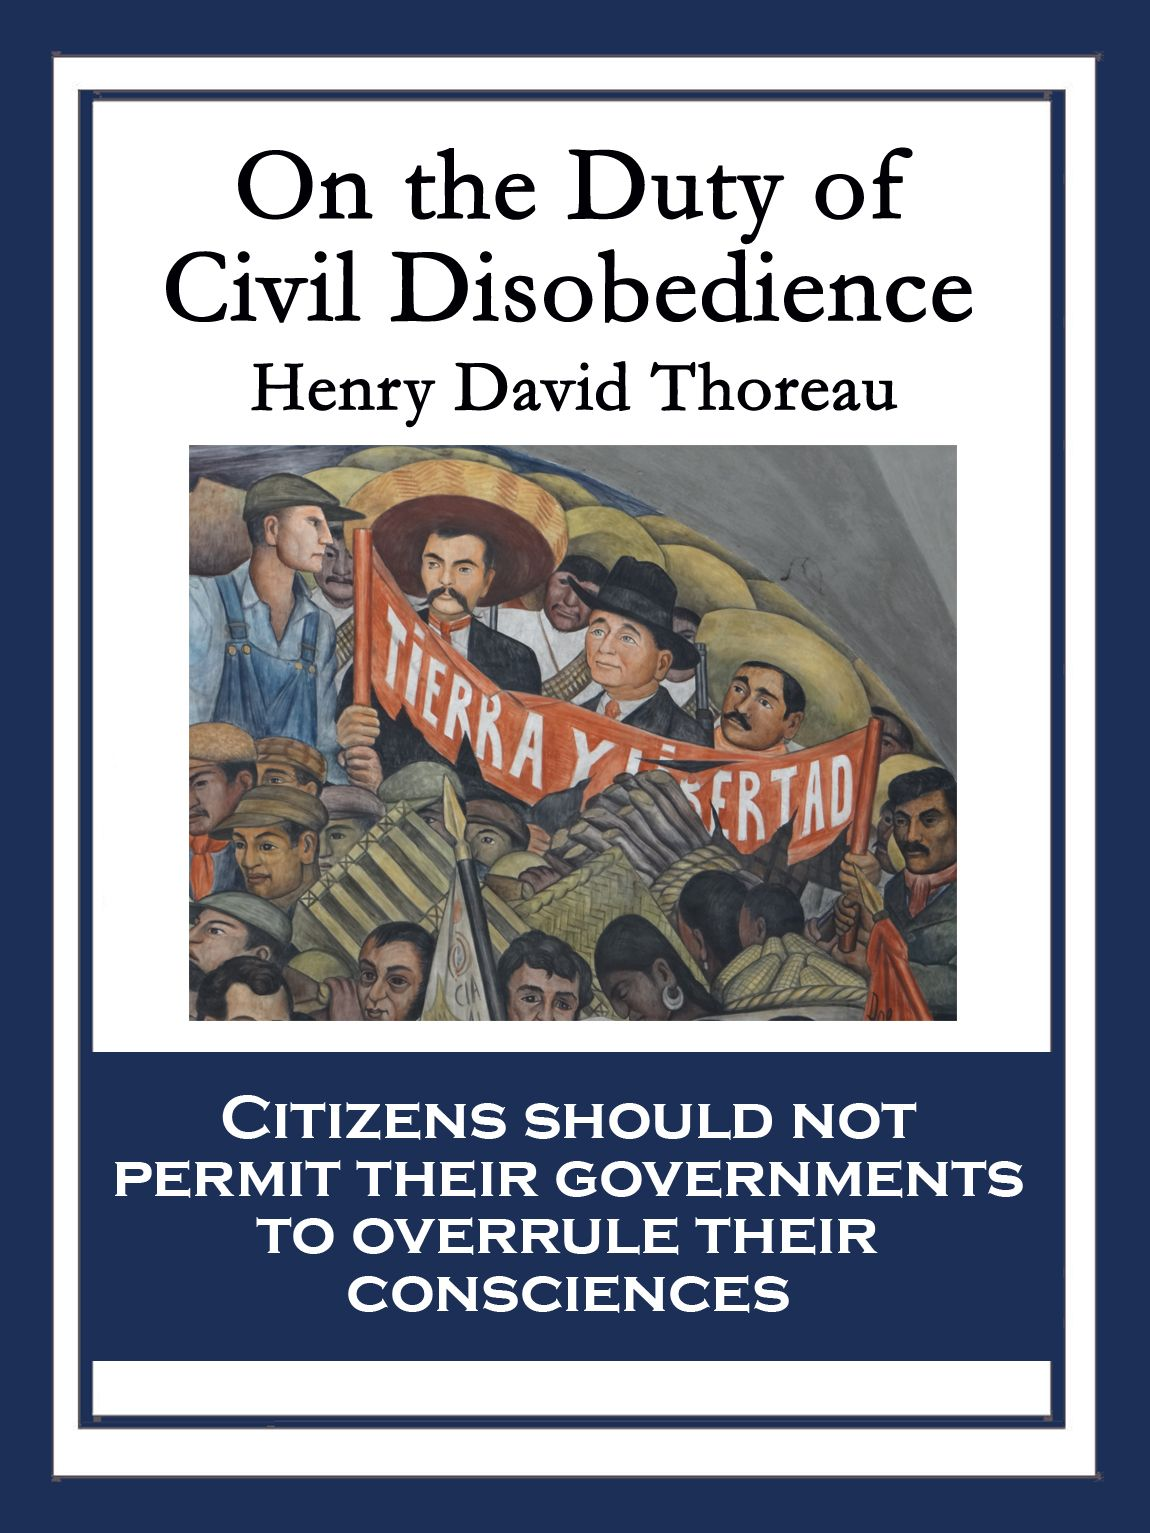 an examination of henry david thoreaus positions on the issues of government Henry david thoreau (see name pronunciation july 12, 1817 - may 6, 1862) was an american essayist, poet, philosopher, abolitionist, naturalist, tax resister.